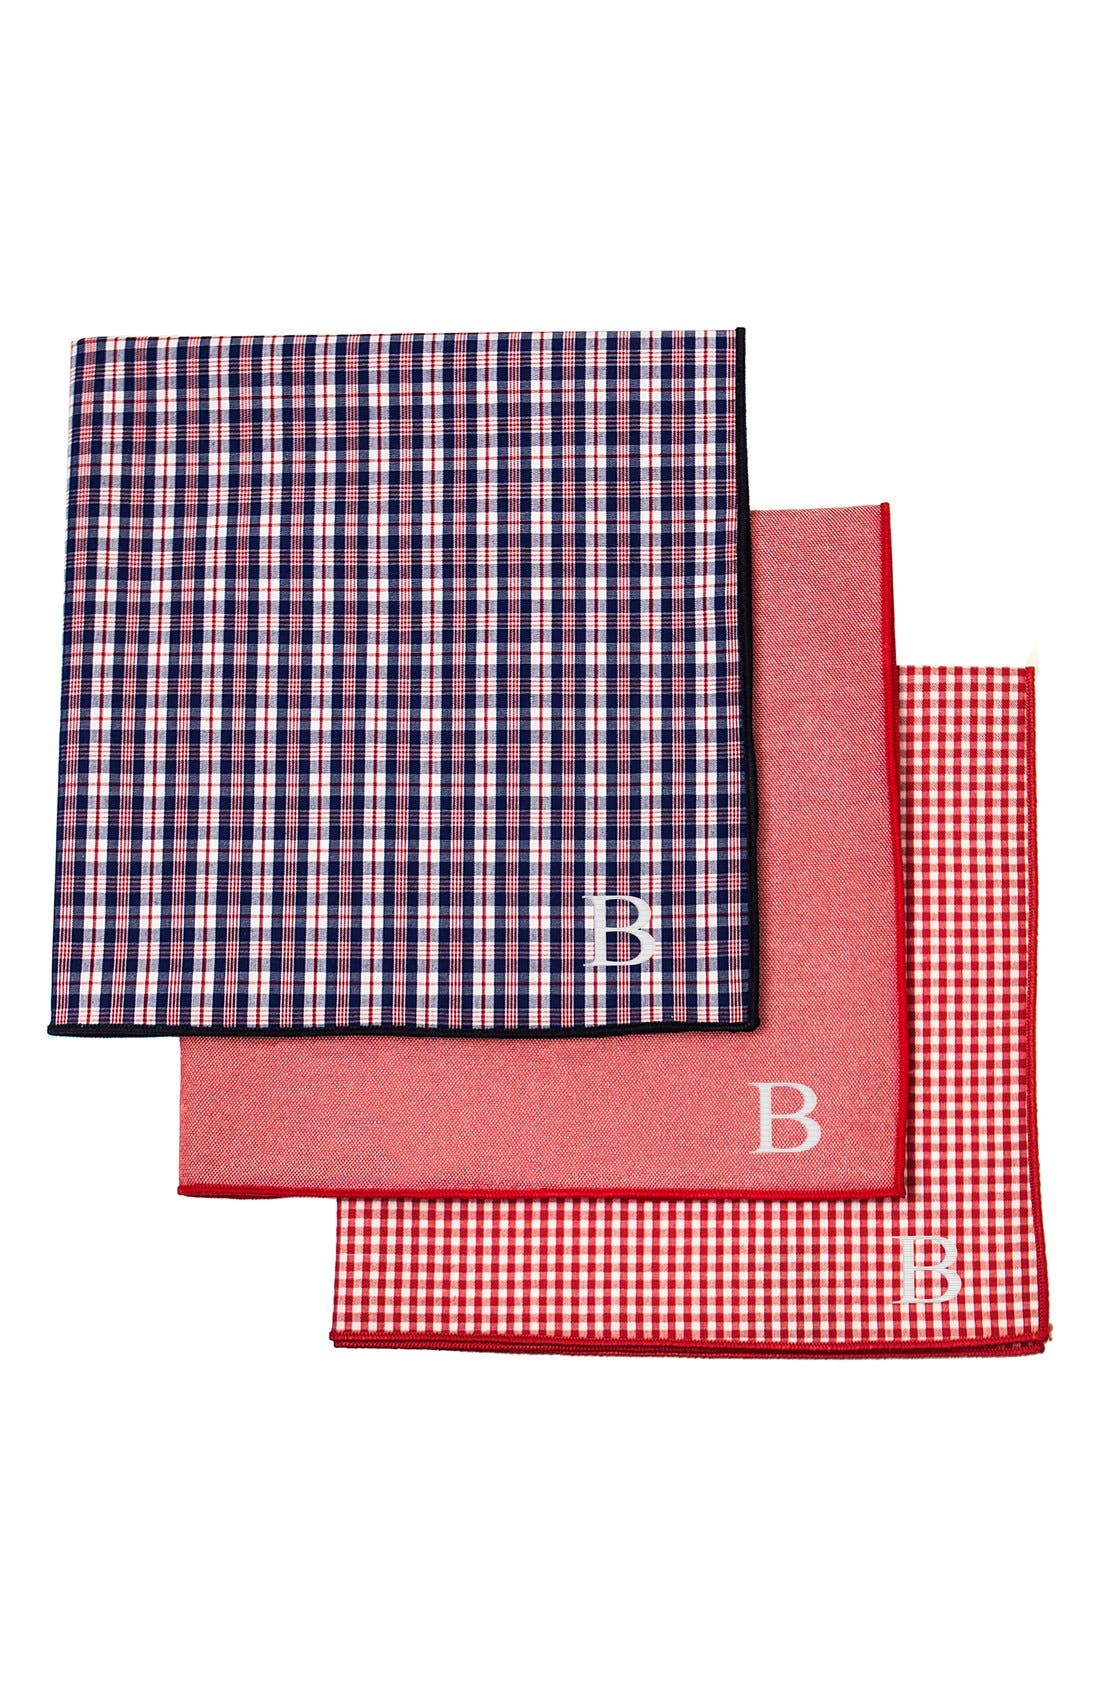 Set of 3 Monogram Pocket Squares,                         Main,                         color, Red - B